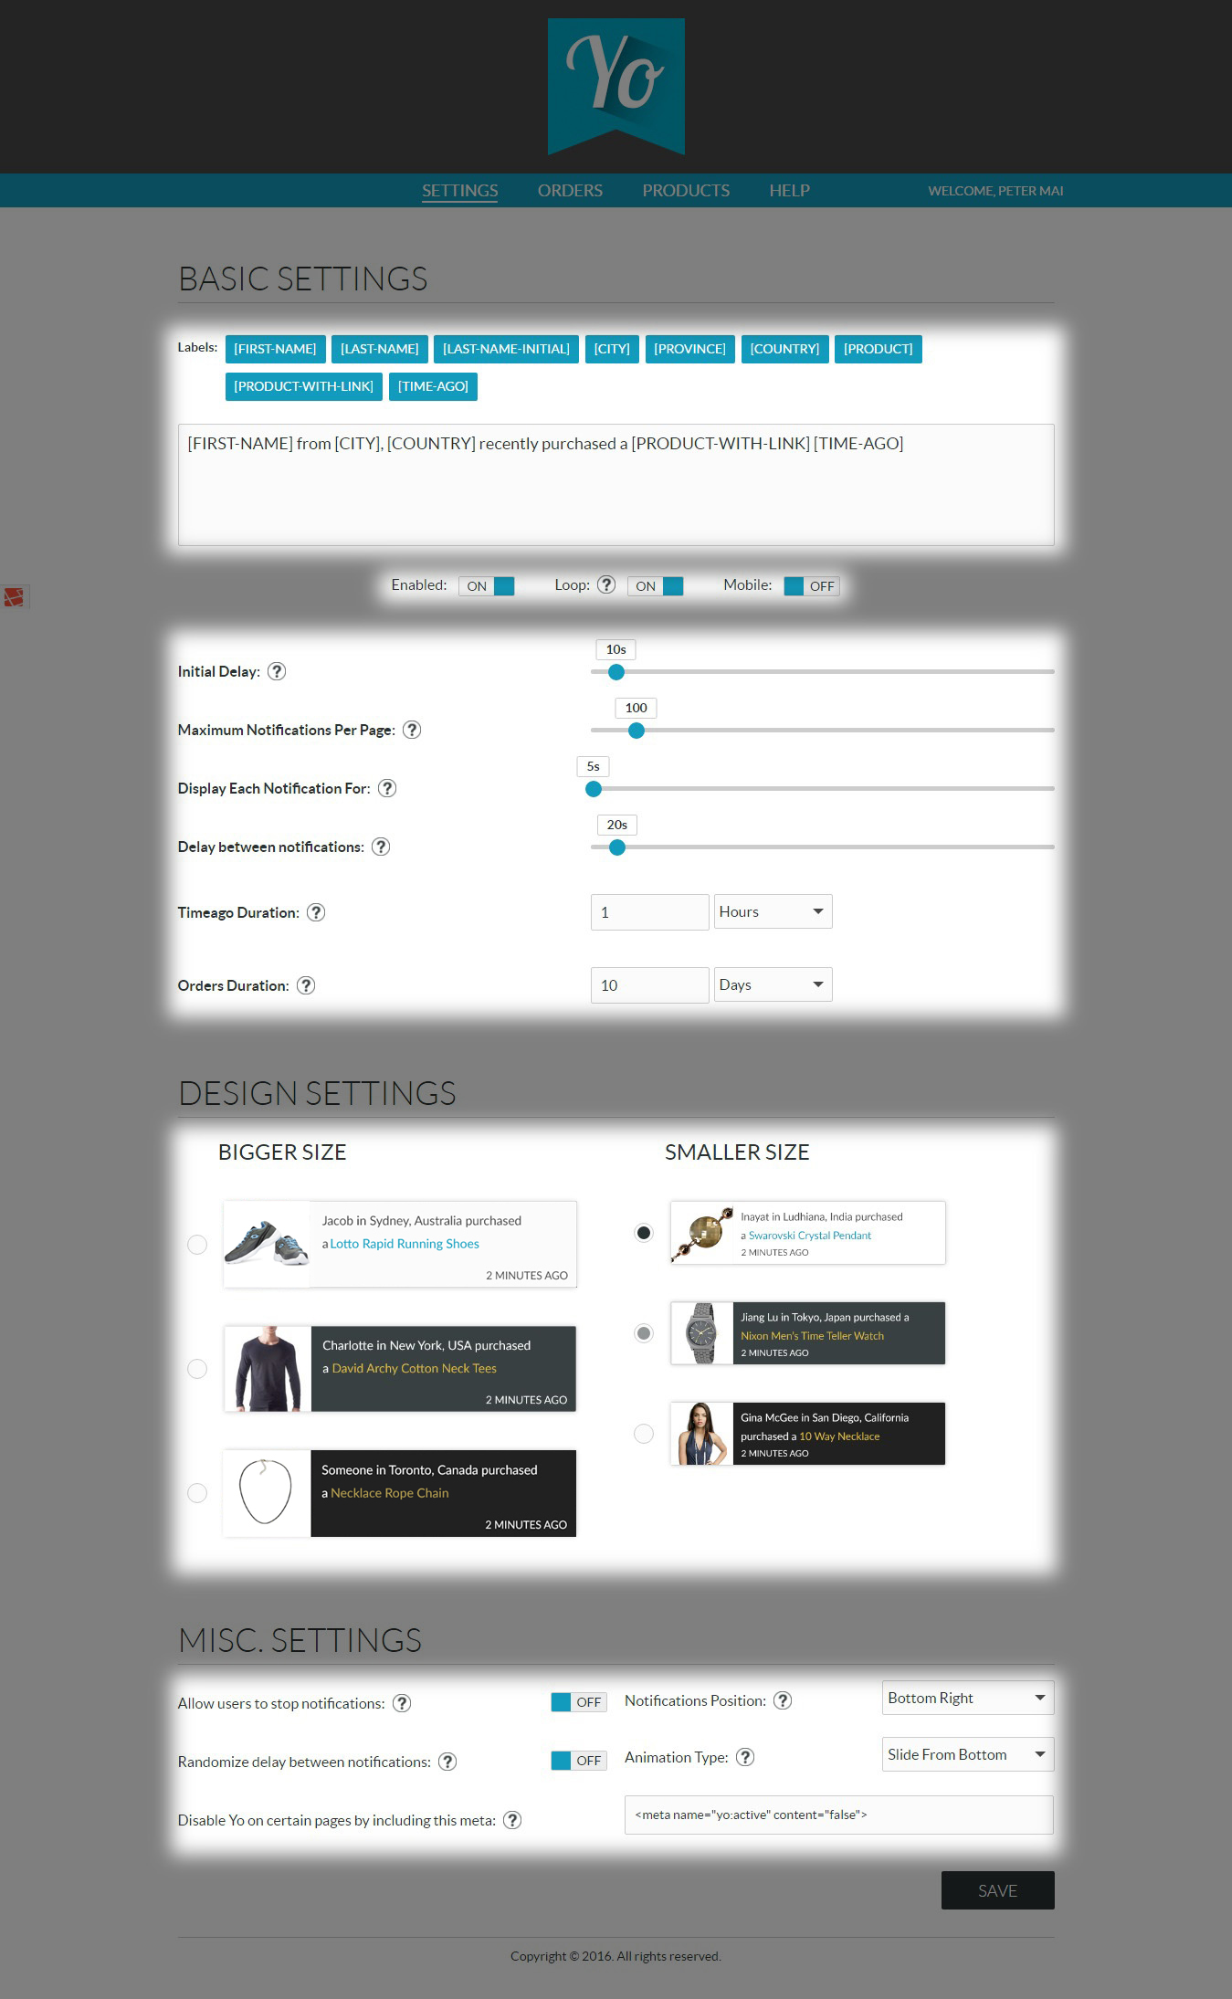 Screenshot showing the settings page for Yo once you add it to your Shopify store